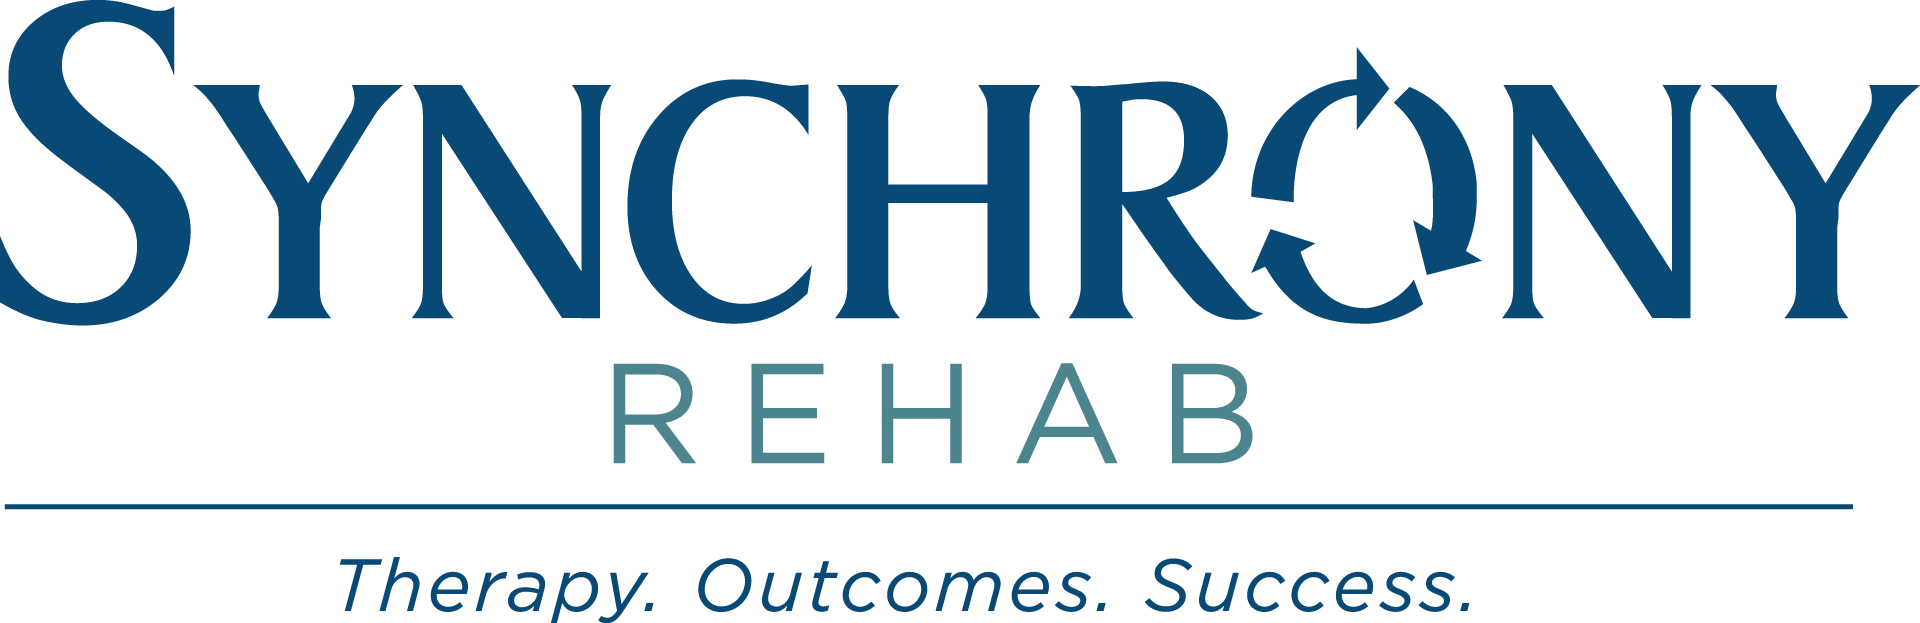 Synchrony Rehab: Therapy. Outcomes. Success.